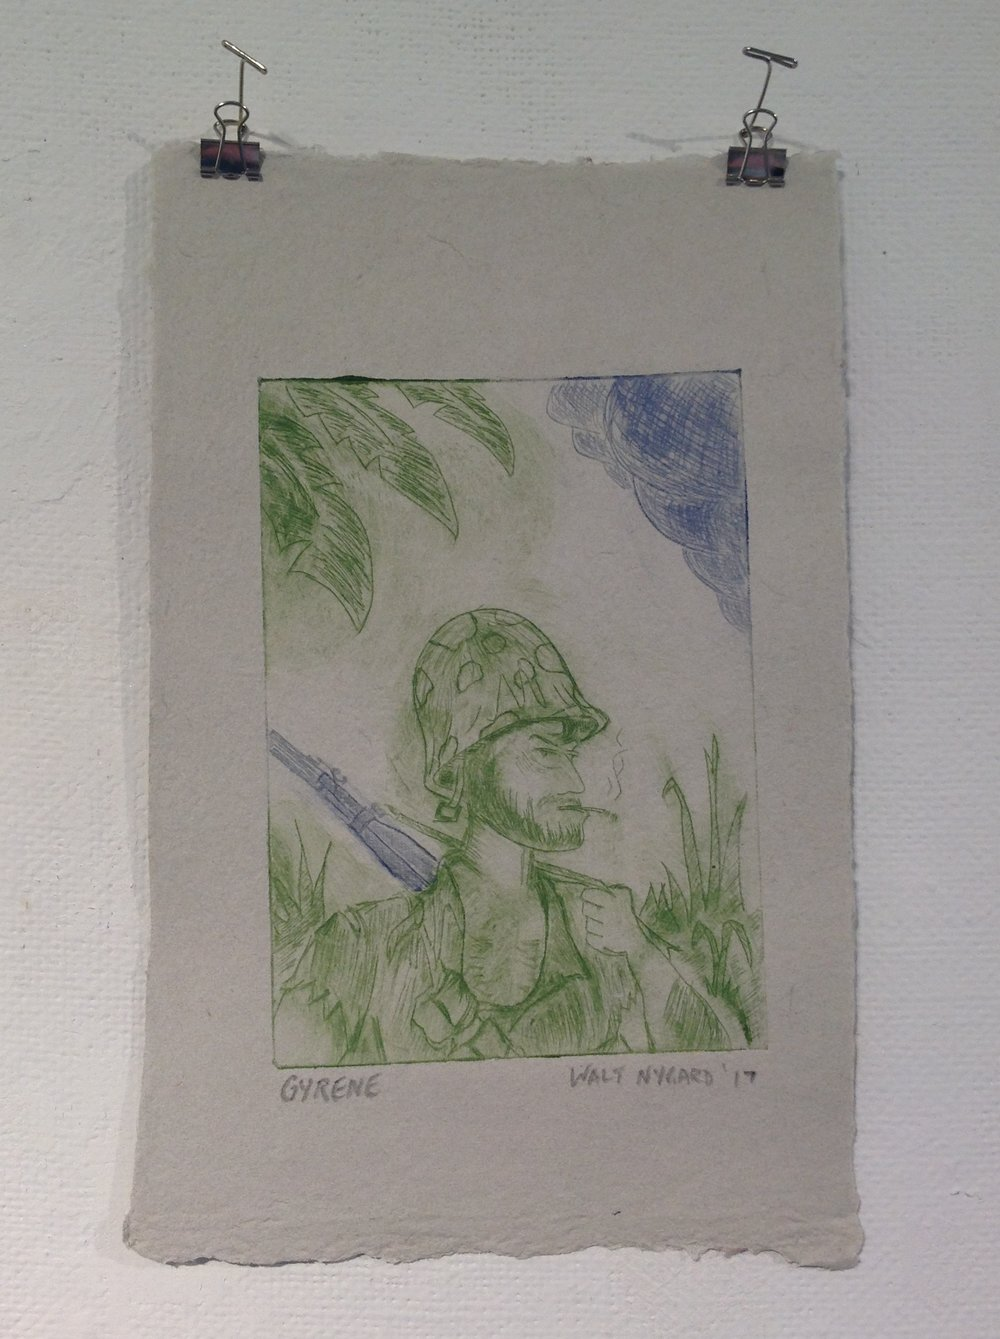 """Gyrene""    Walt Nygard,  2018    Drypoint on handmade paper from military uniforms"